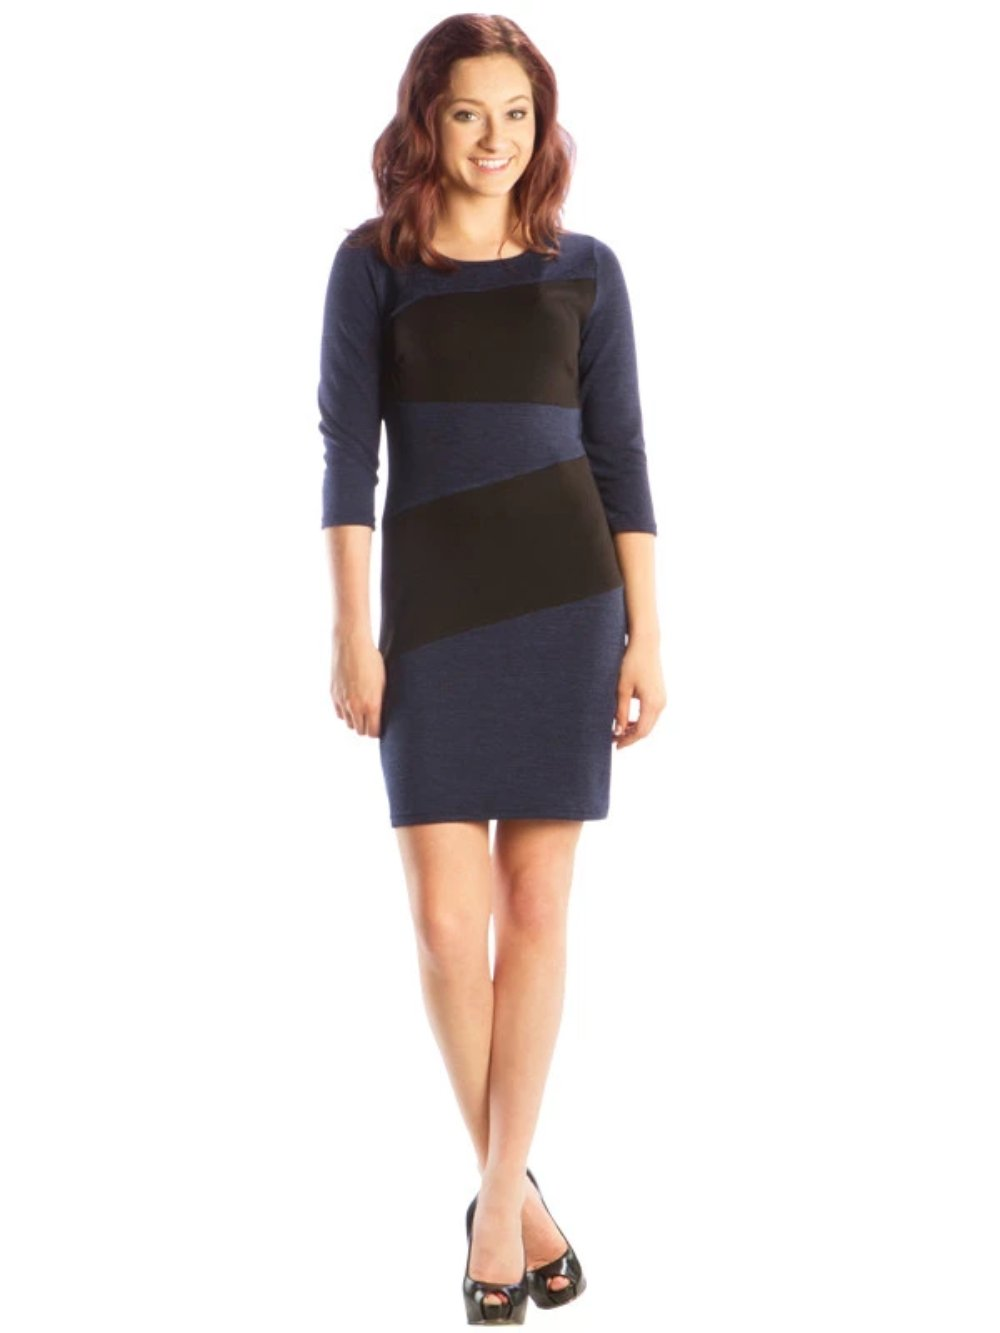 Color Block Sweater Sheath Dress with 3/4 Length Sleeves, Navy